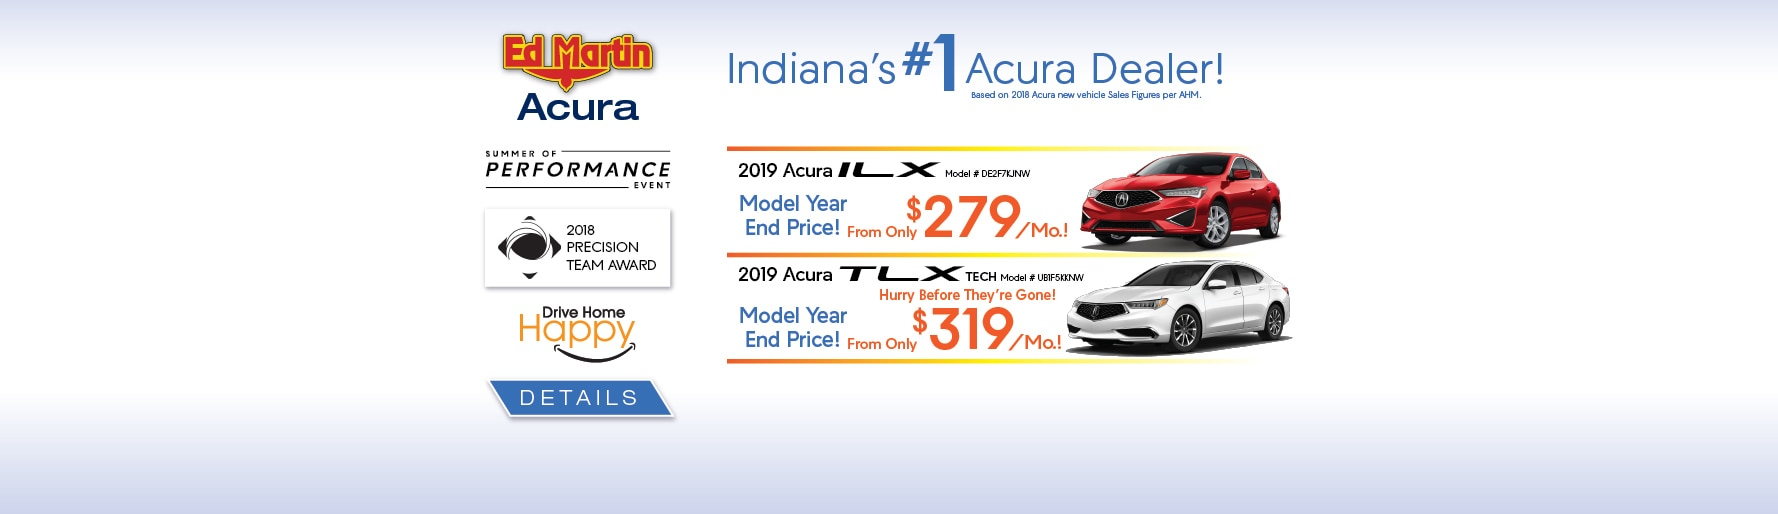 New and Used Acura Dealer Indianapolis | Ed Martin Acura